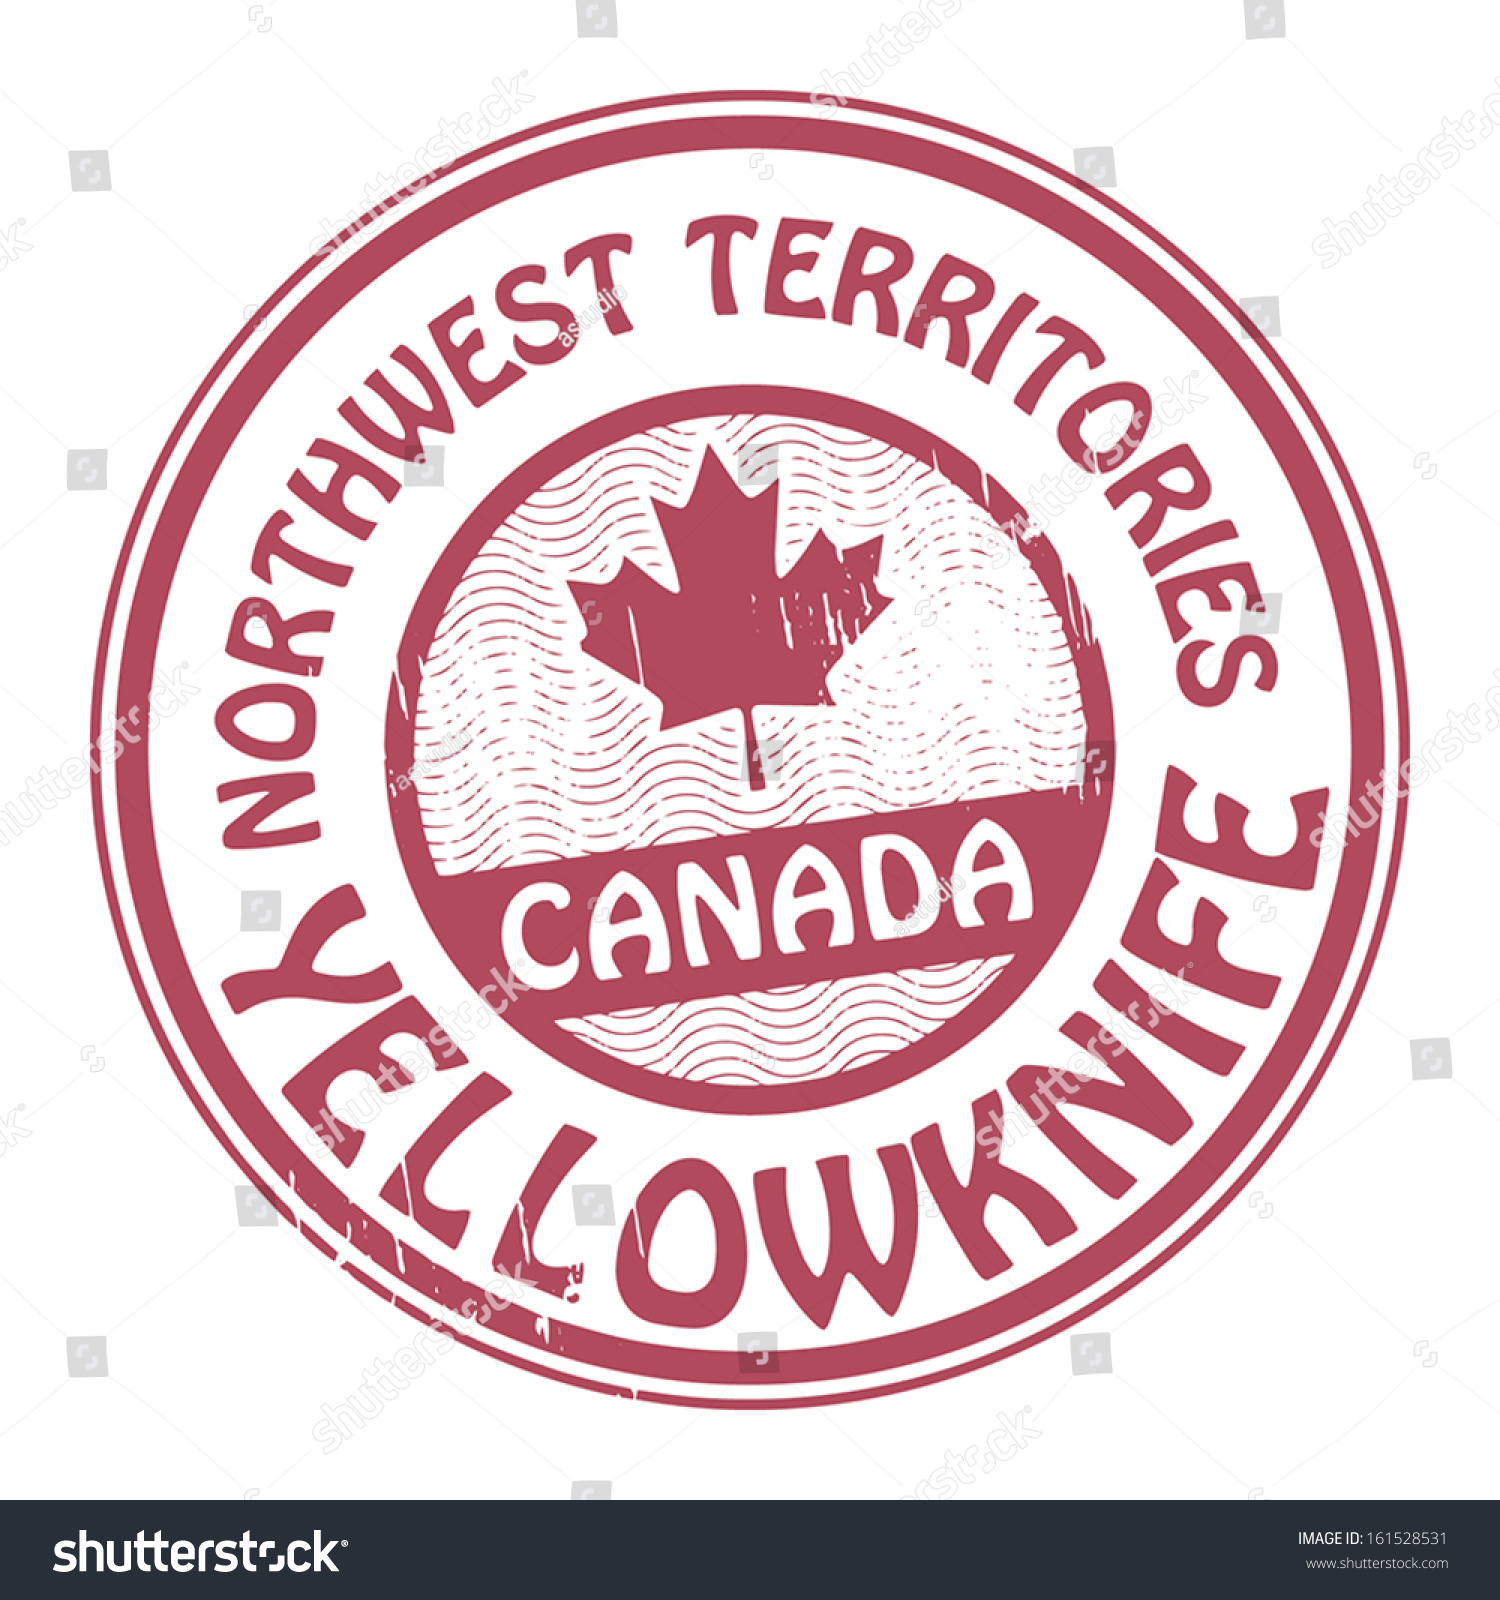 Stamp name canada northwest territories yellowknife stock vector stamp with name of canada northwest territories and yellowknife vector illustration biocorpaavc Image collections